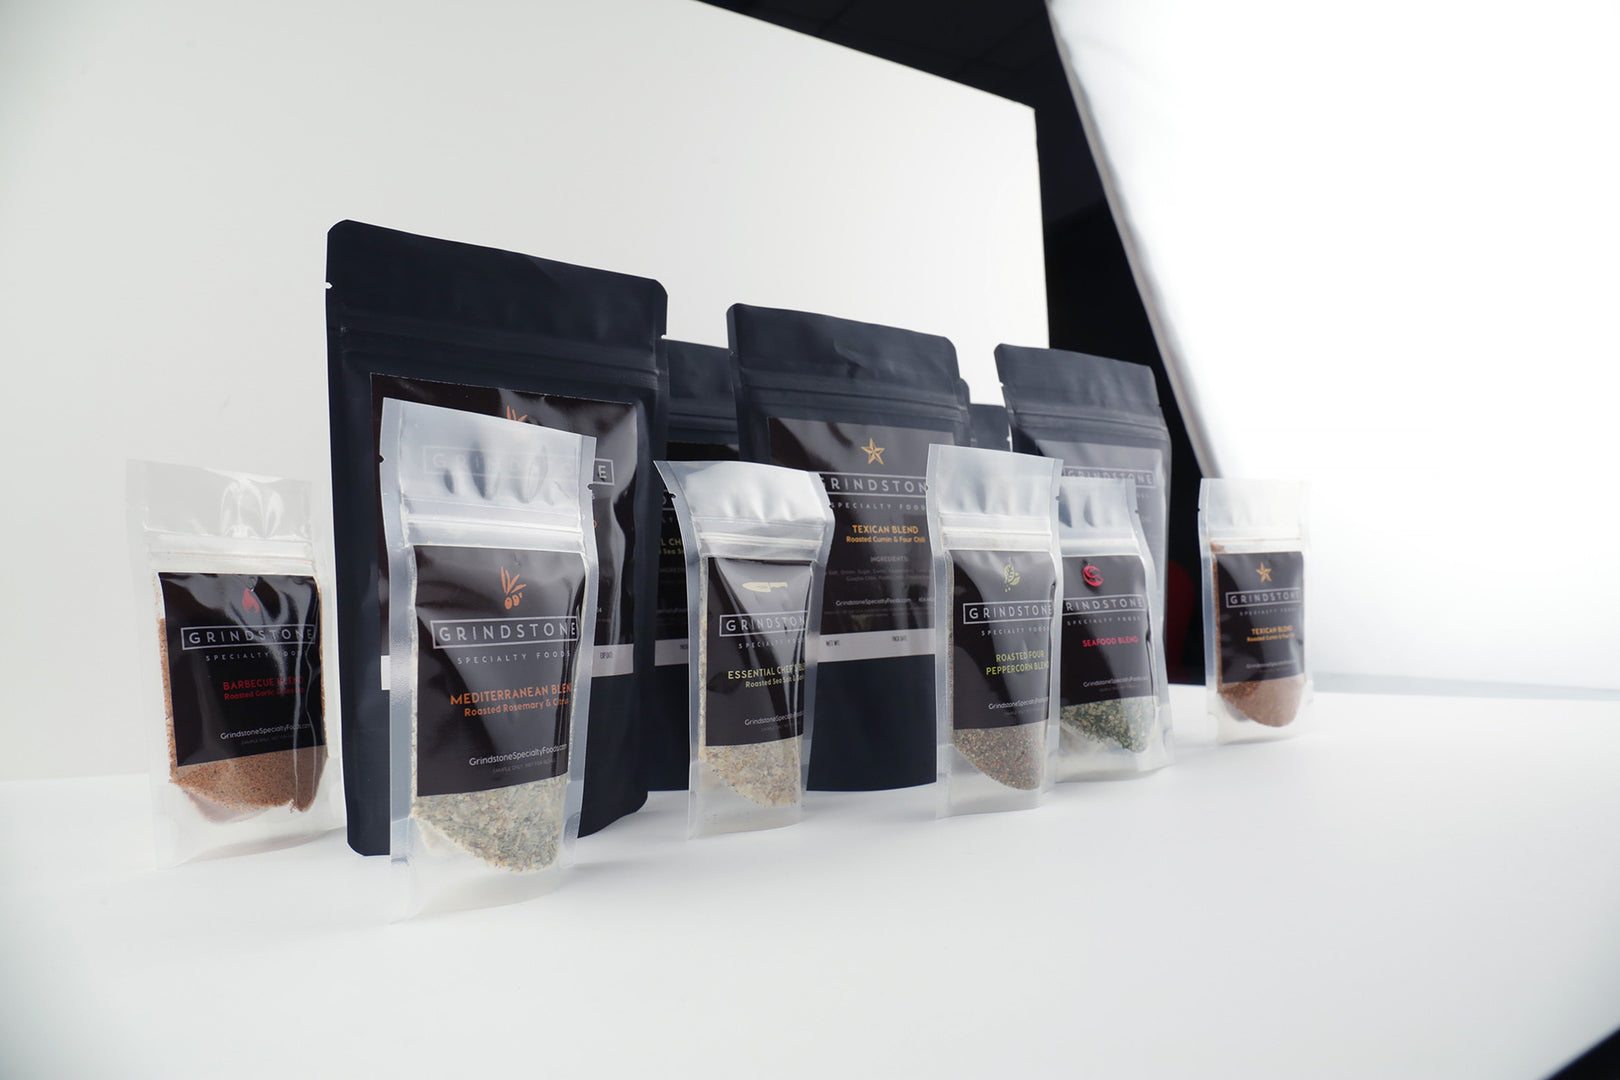 Roasted Spice Blends Collection